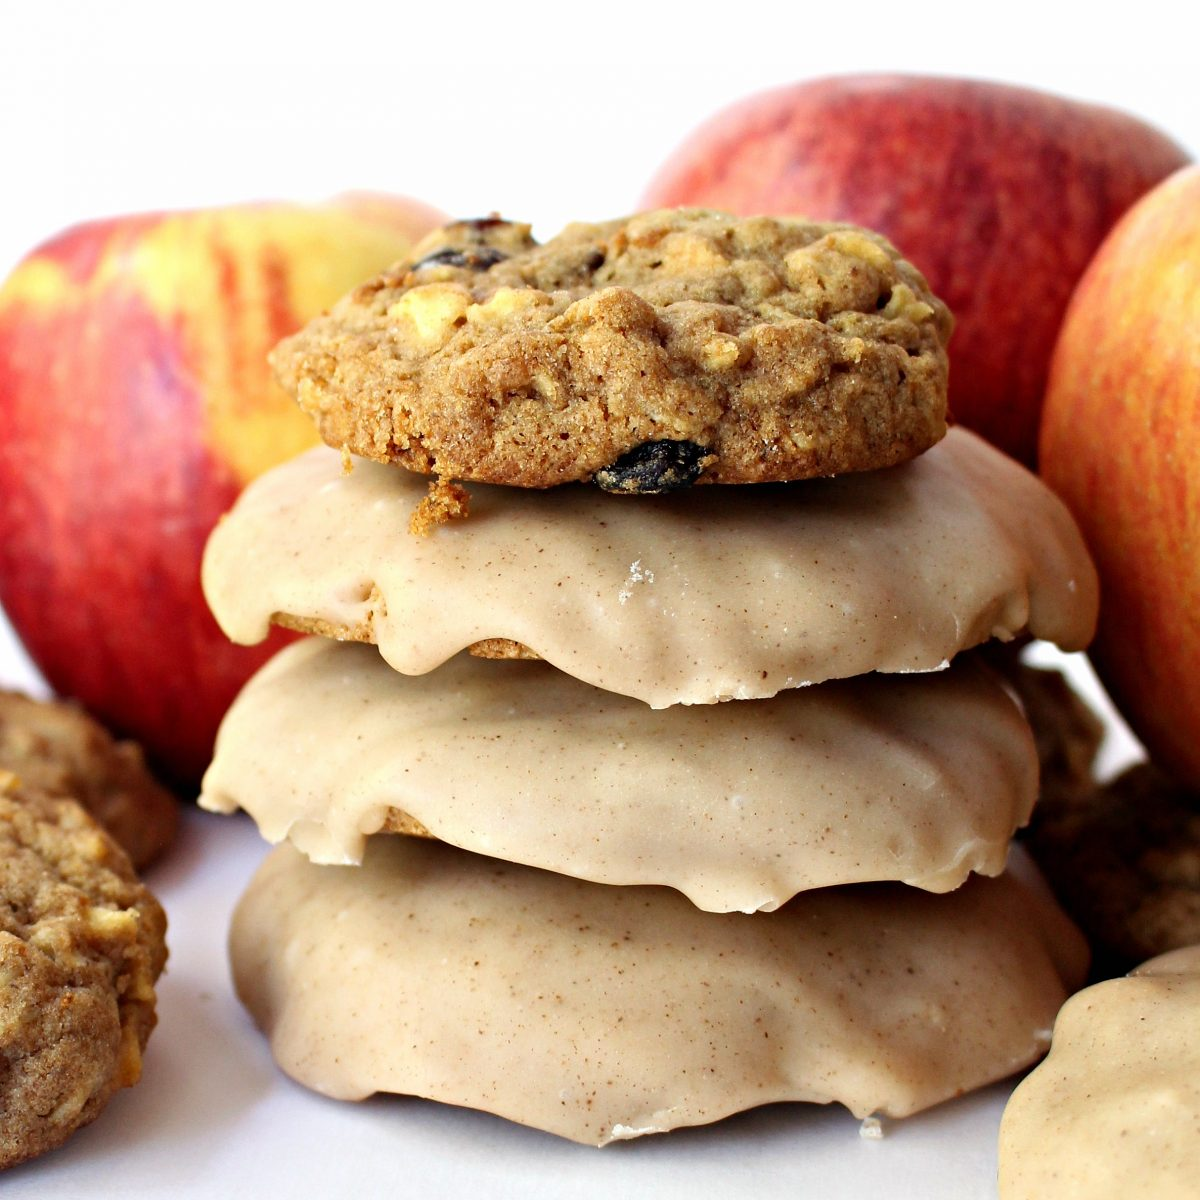 A stack of cookies with three iced and one plain.